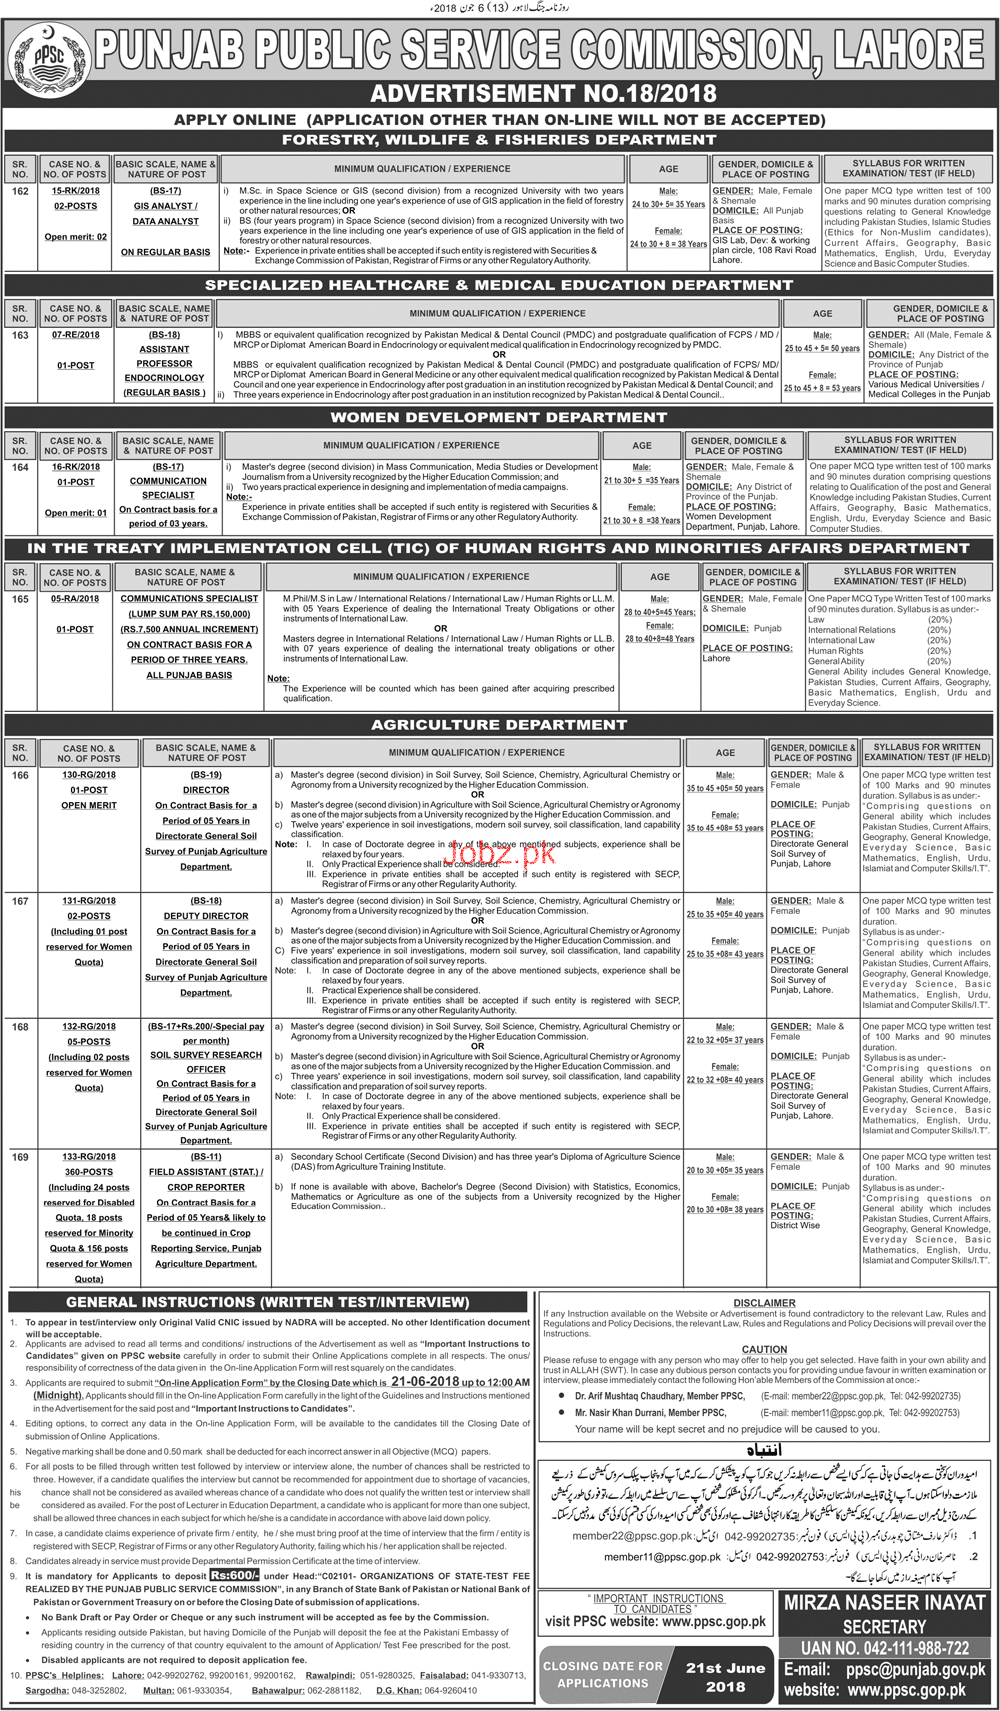 Field Assistants Job in Agriculture Department Through PPSC